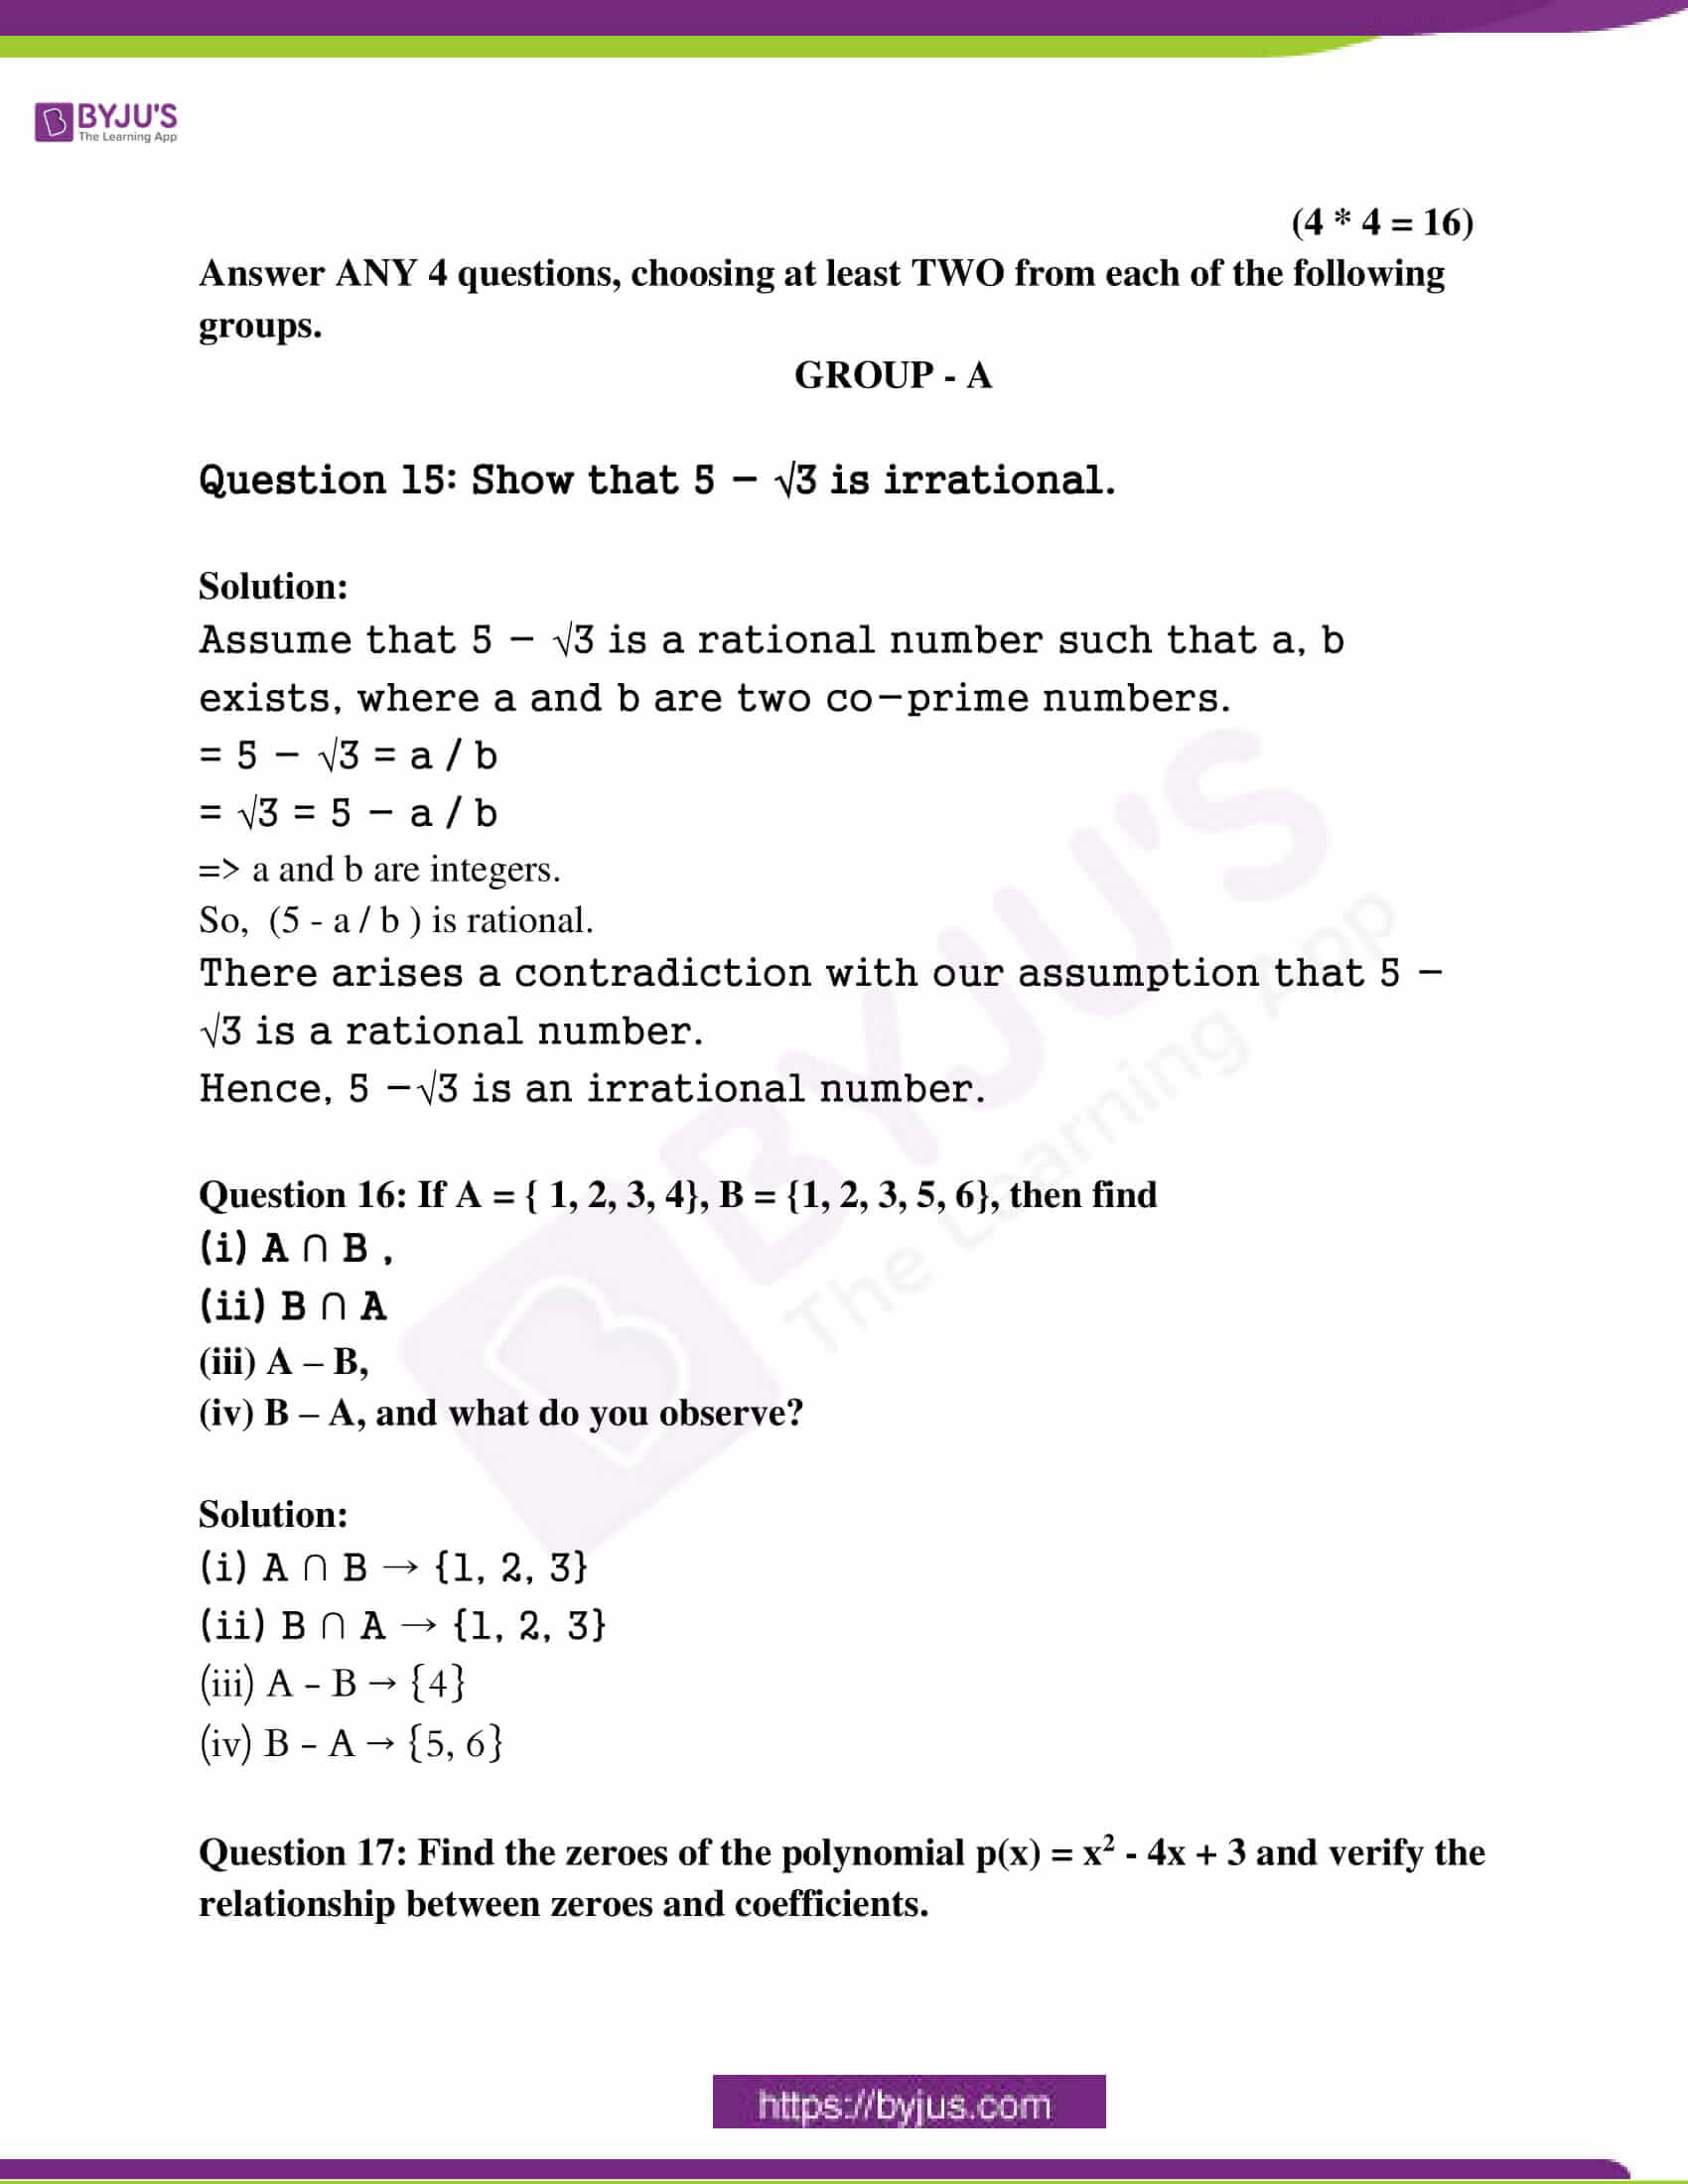 ap class 10 maths question paper 1 sol march 2016 06